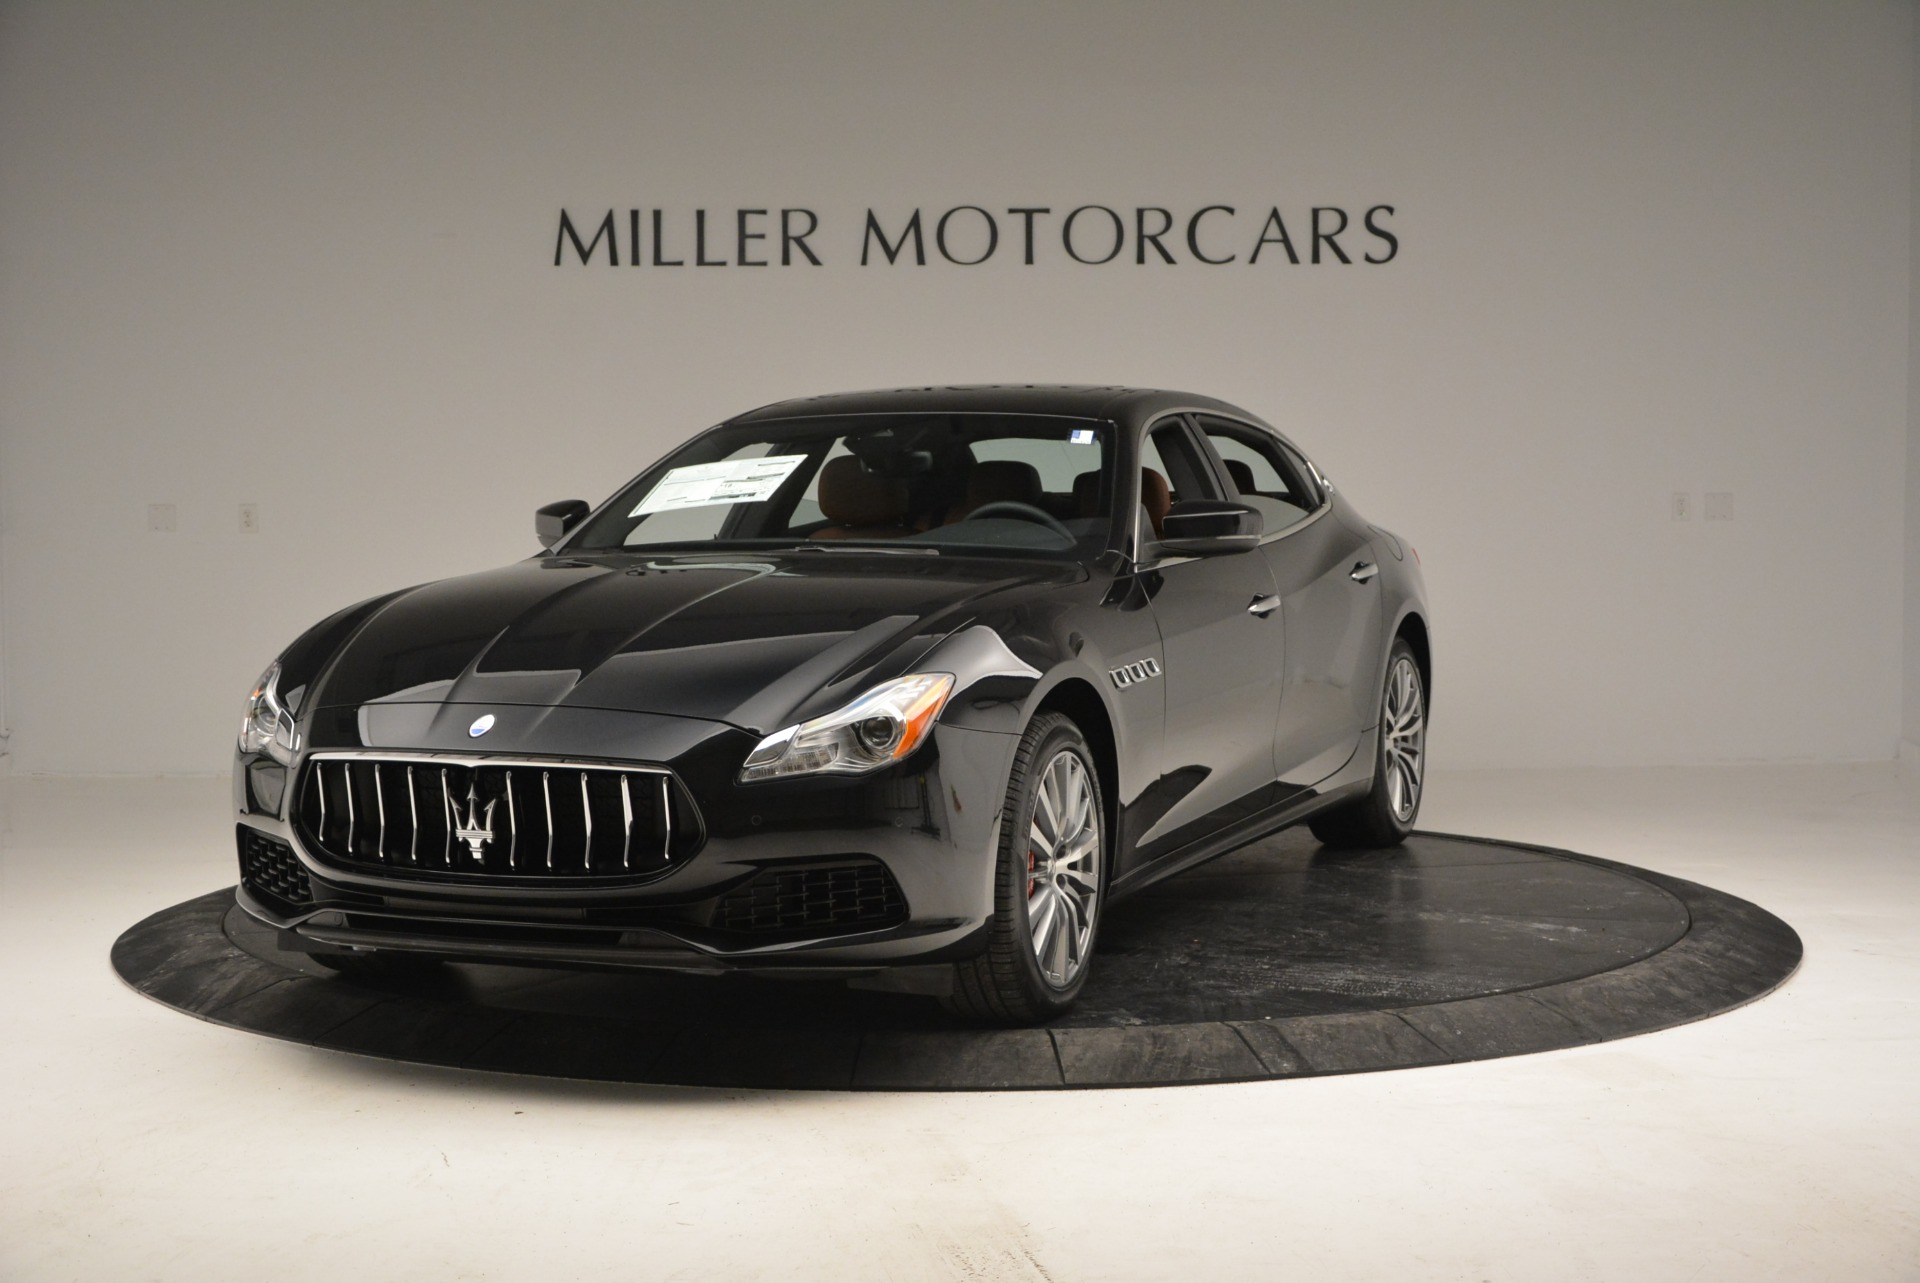 2018 maserati quattroporte s q4 stock # w574 for sale near westport